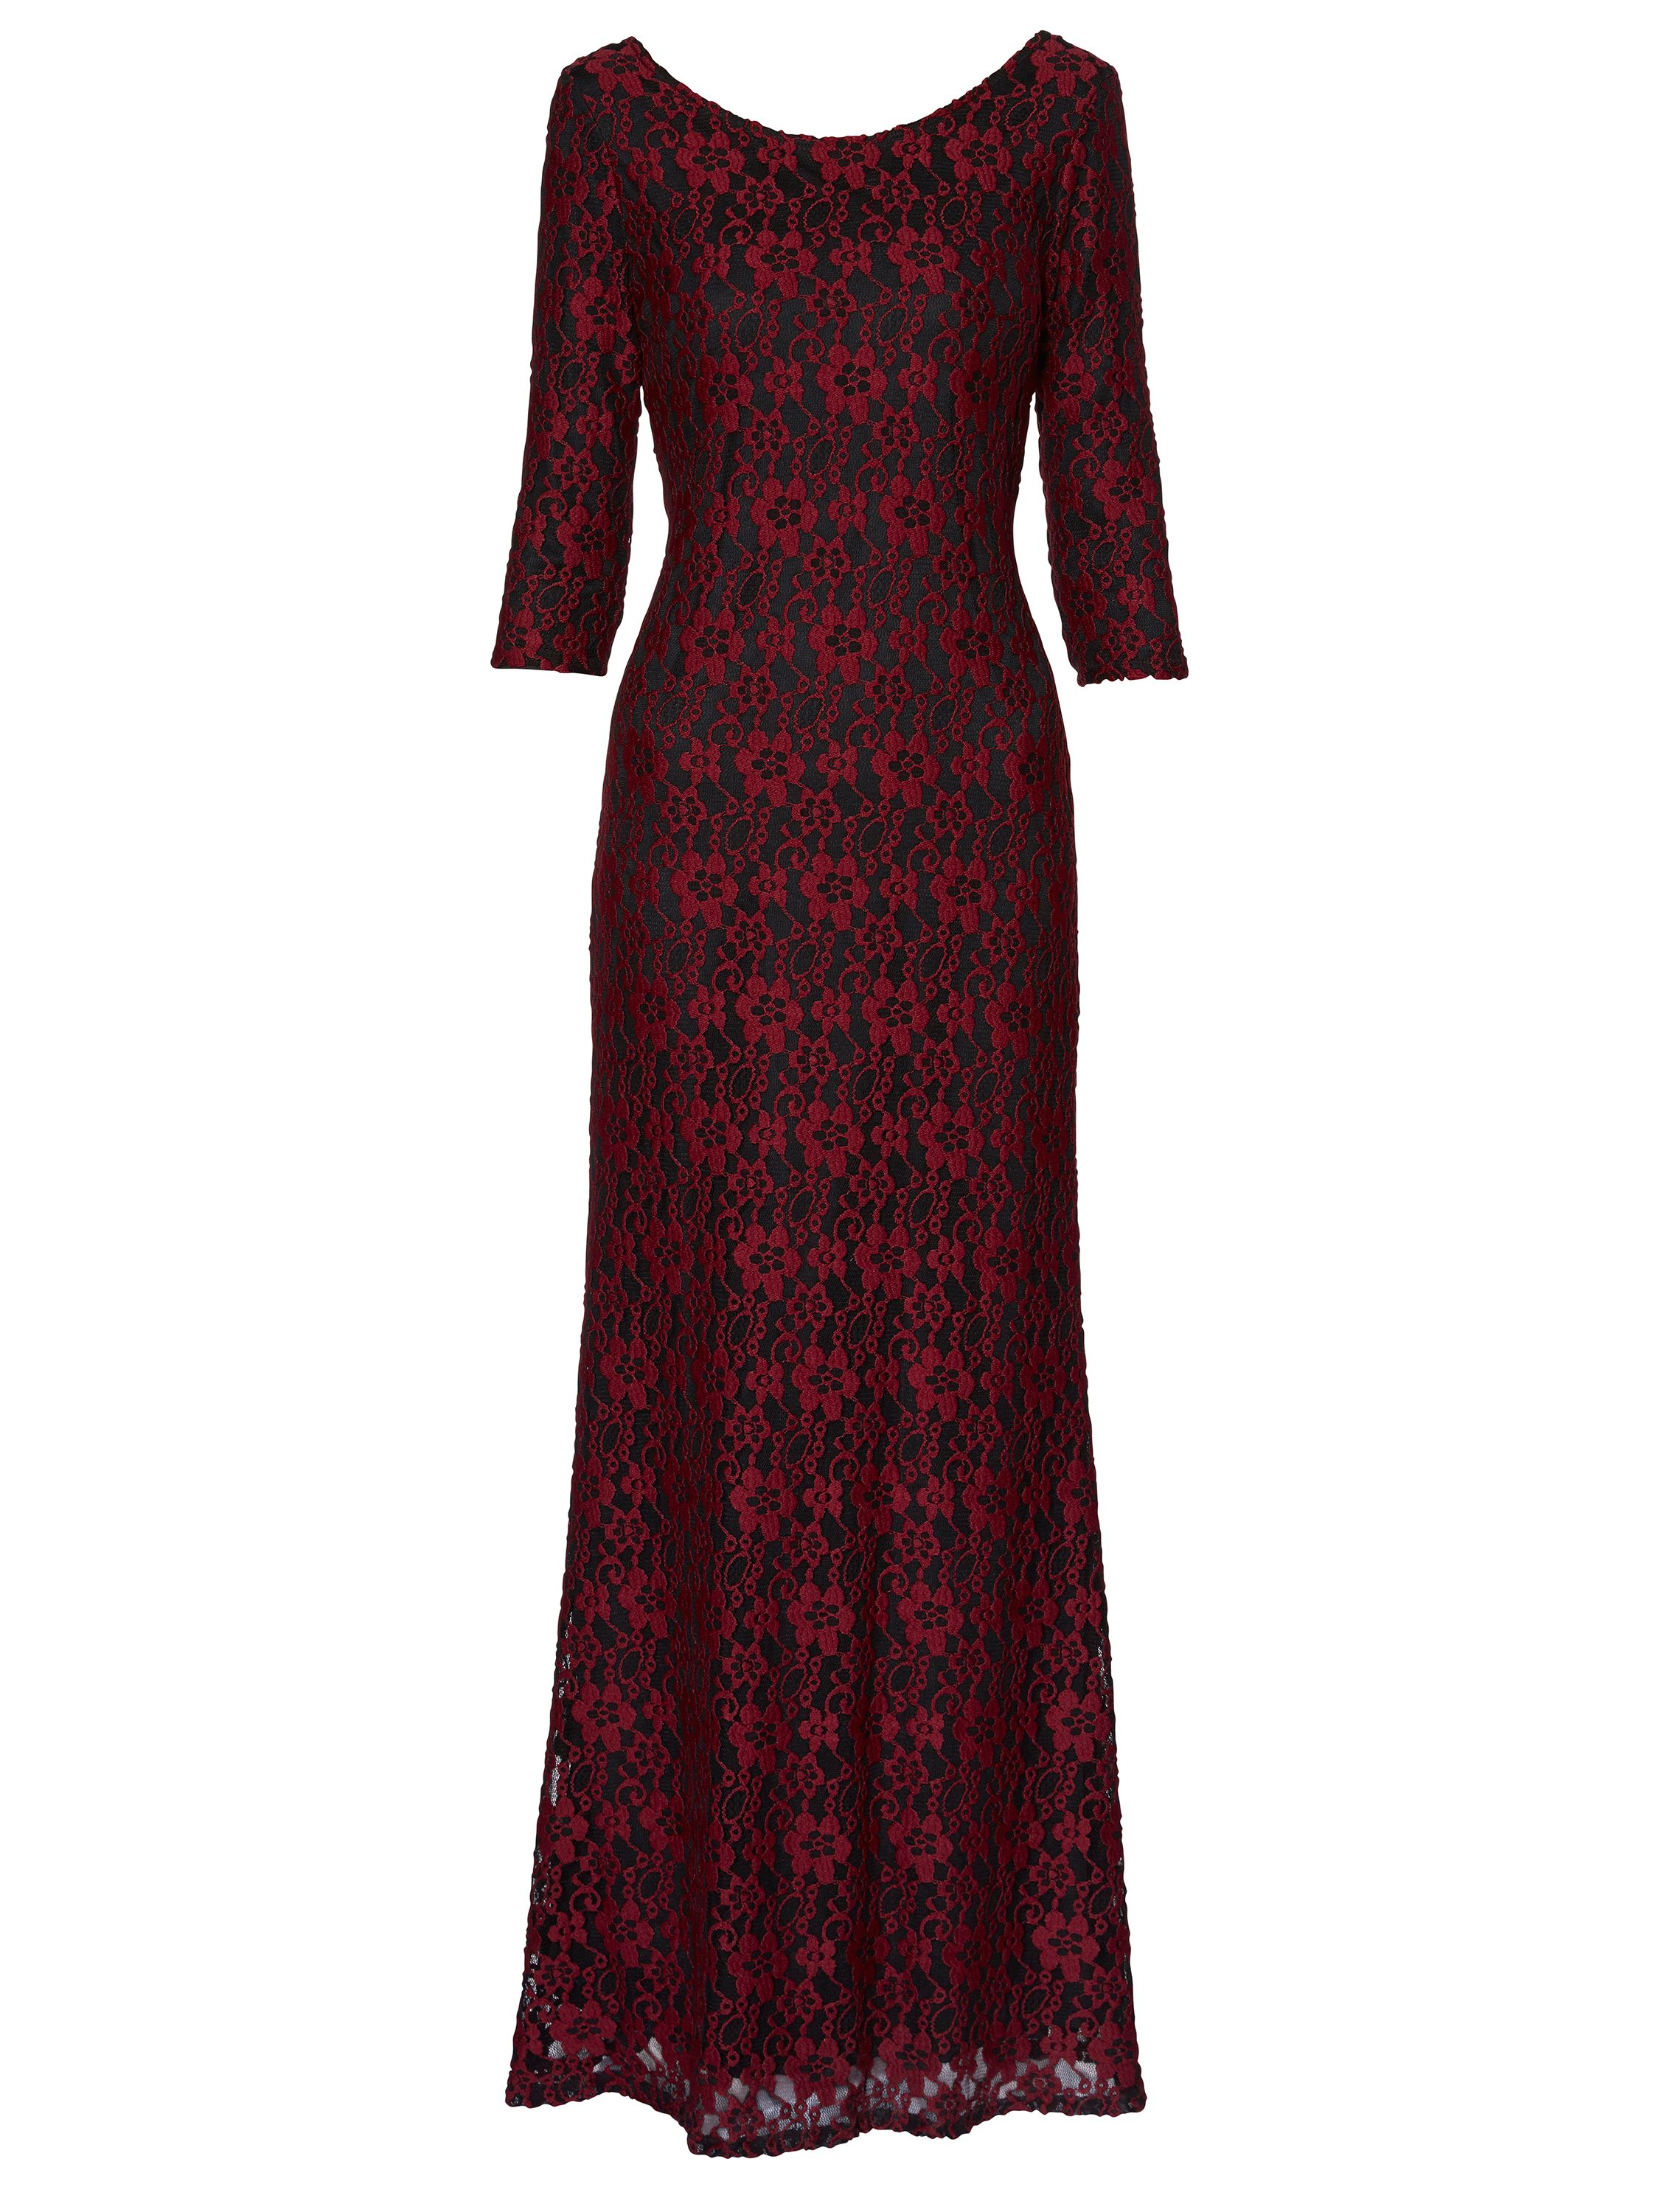 Gina Bacconi Lola Floral Lace Maxi Dress, Red